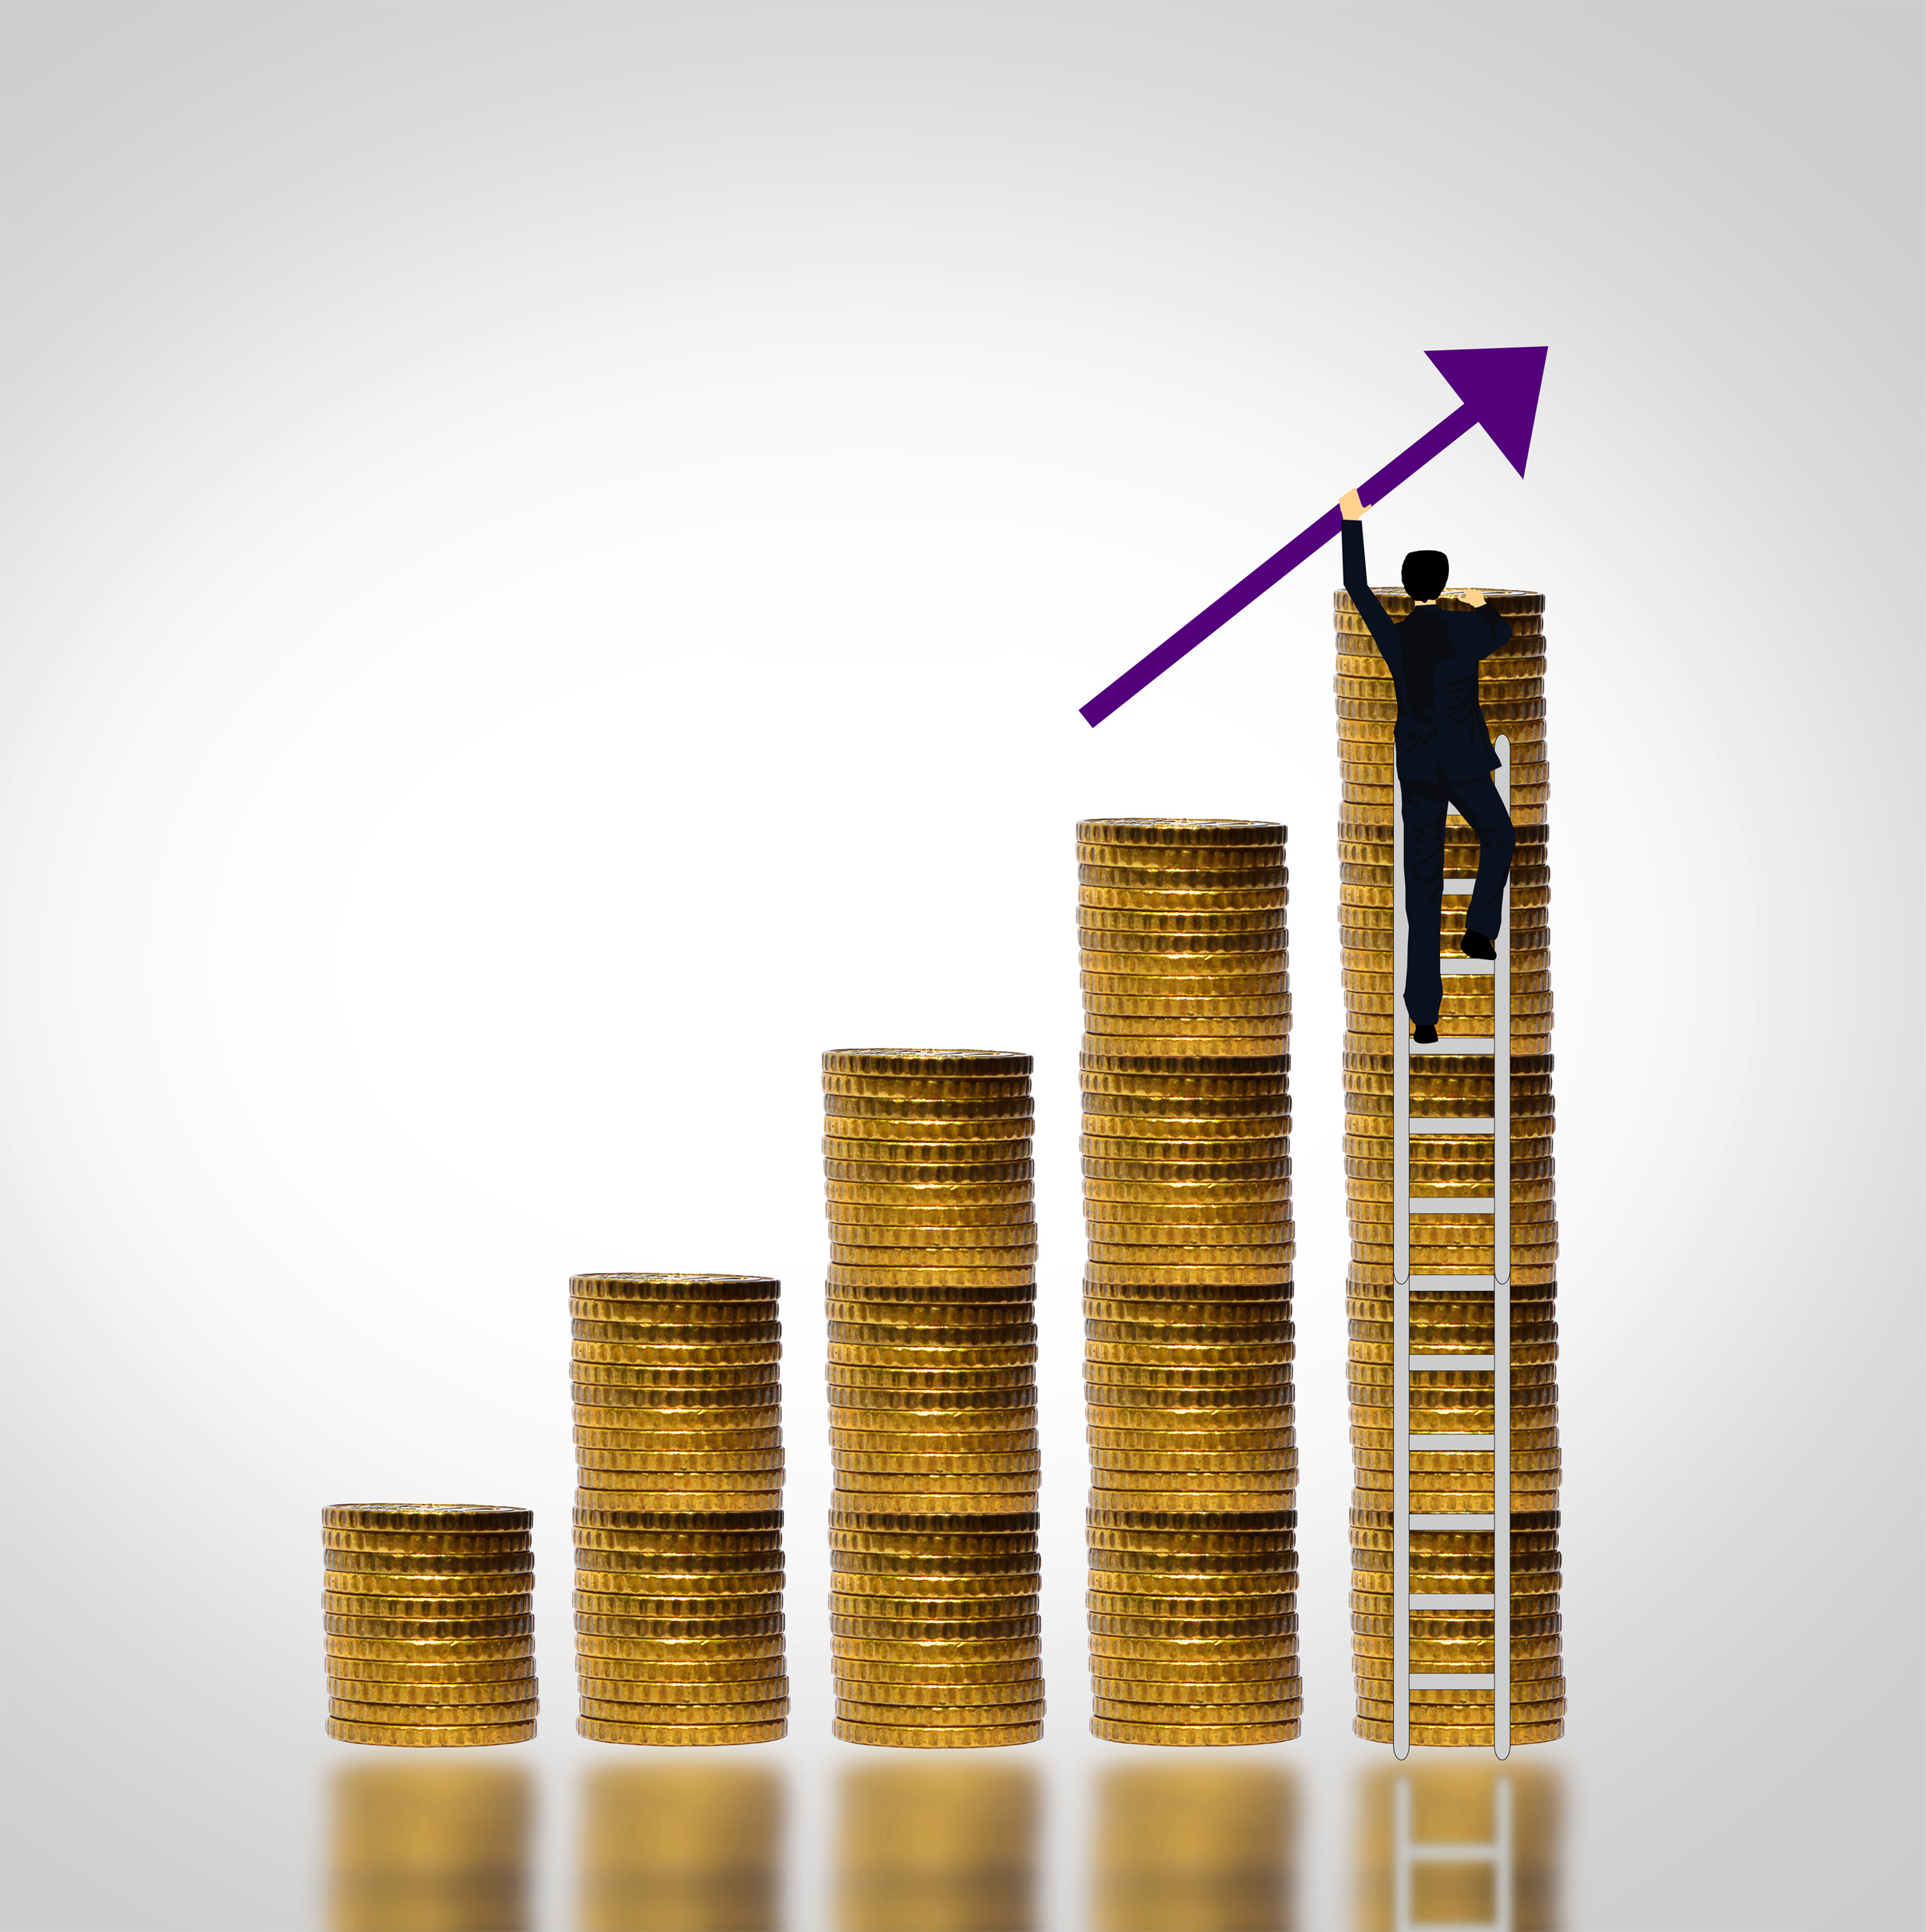 Man climbing coin stack - money growth photo